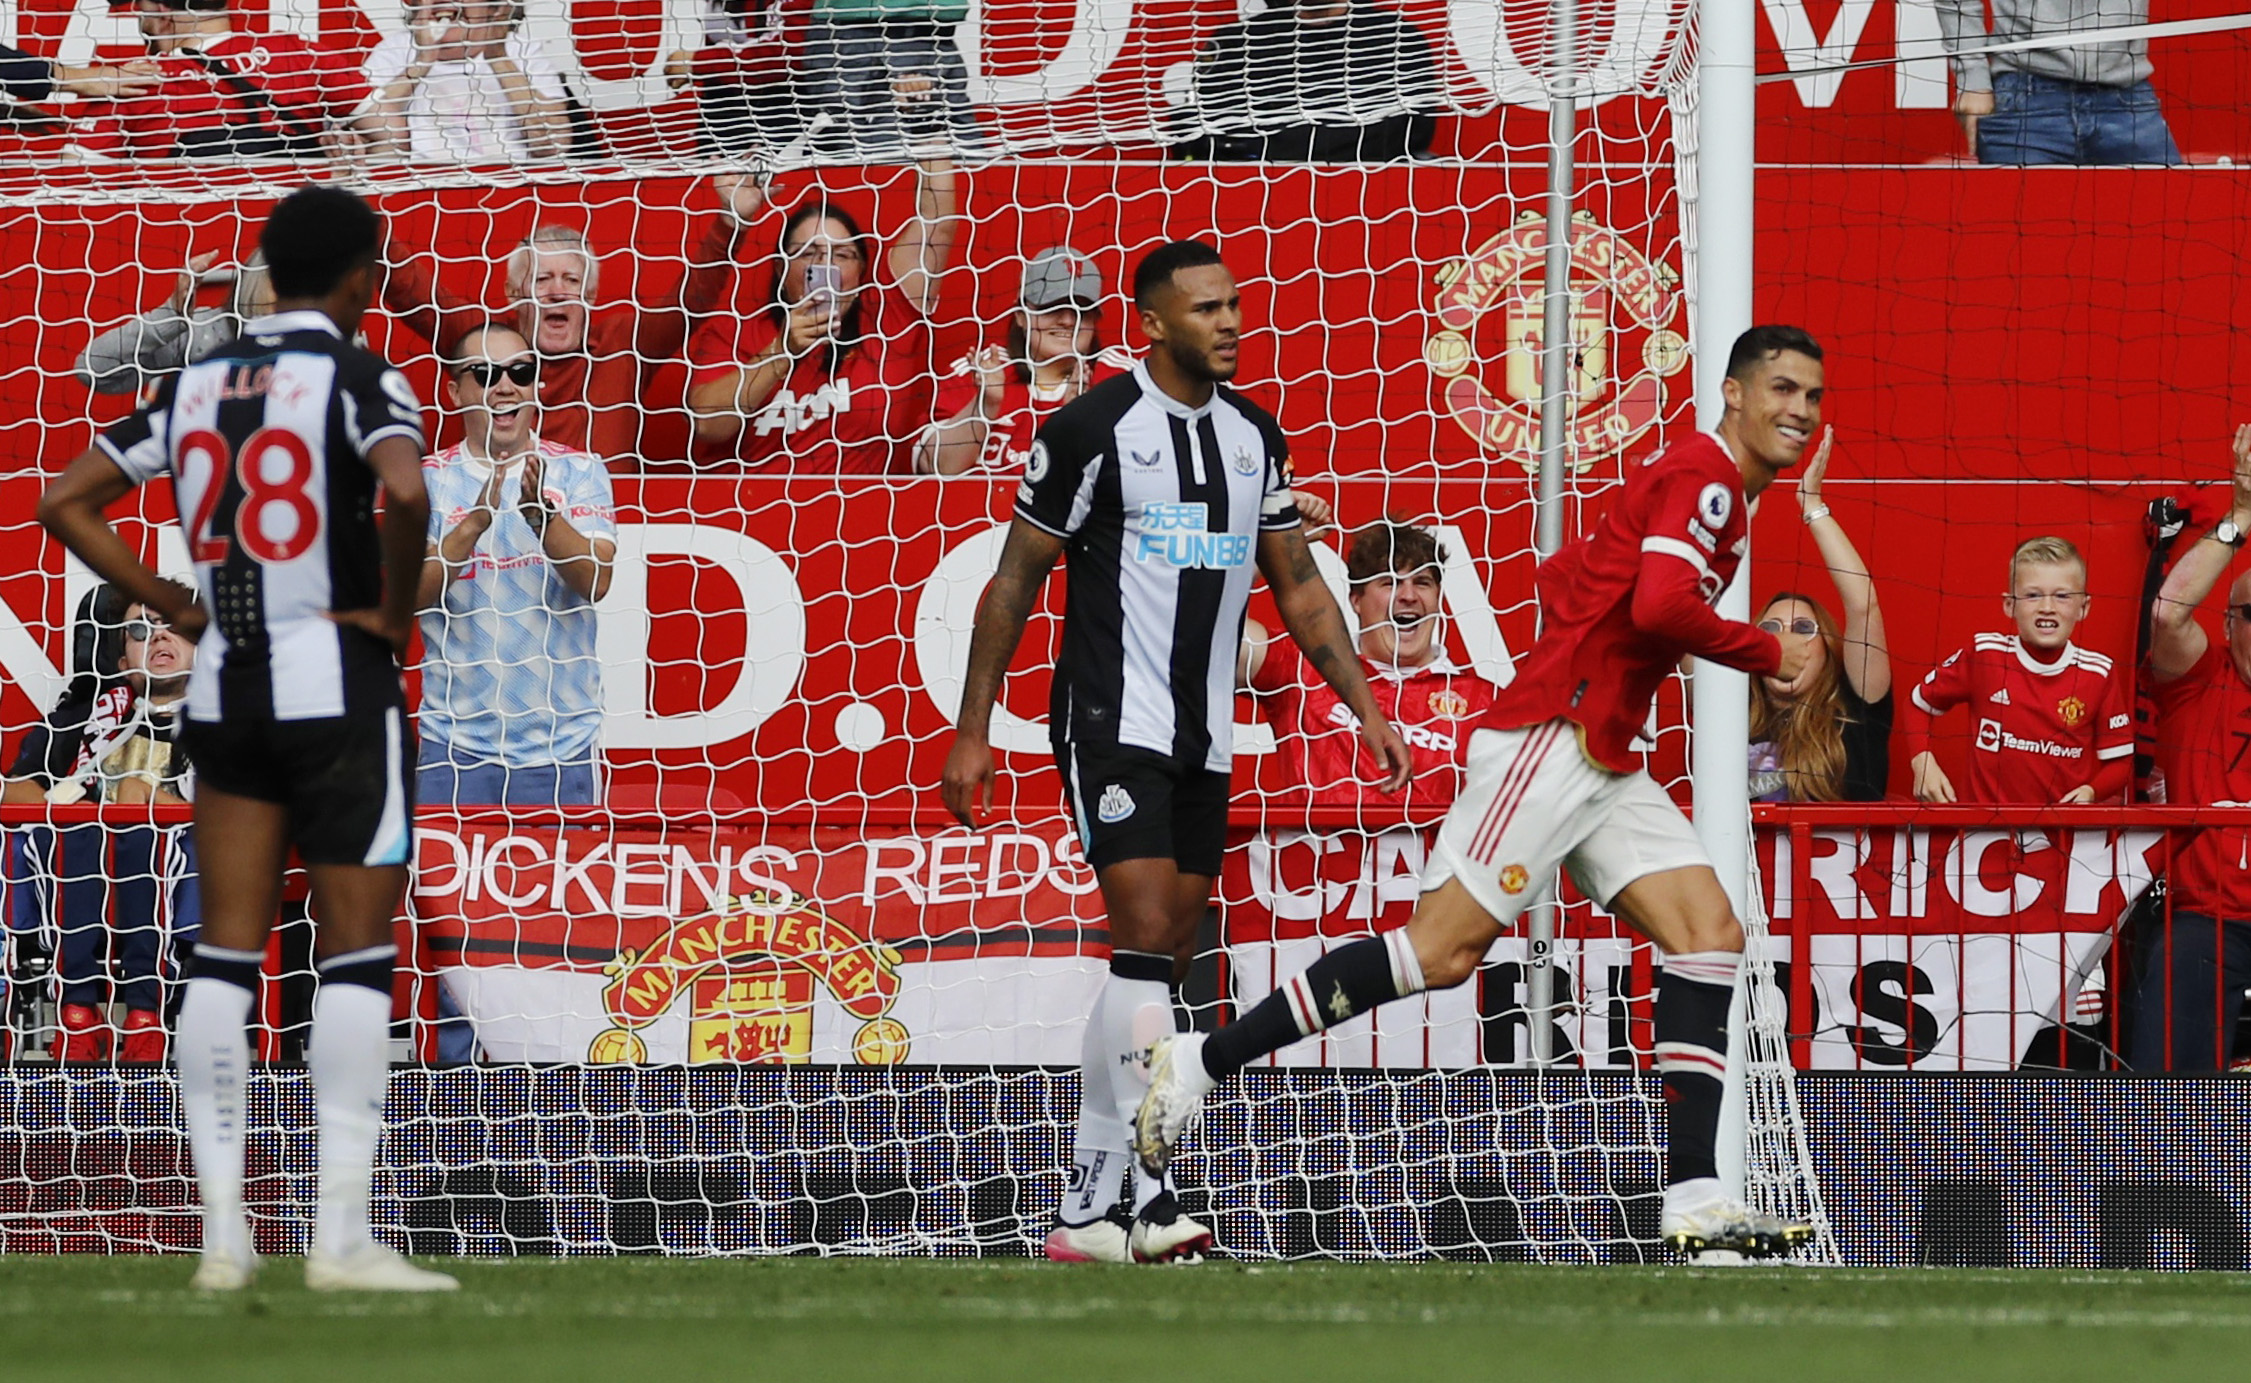 Soccer Football - Premier League - Manchester United v Newcastle United - Old Trafford, Manchester, Britain - September 11, 2021 Manchester United's Cristiano Ronaldo celebrates scoring their first goal REUTERS/Phil Noble